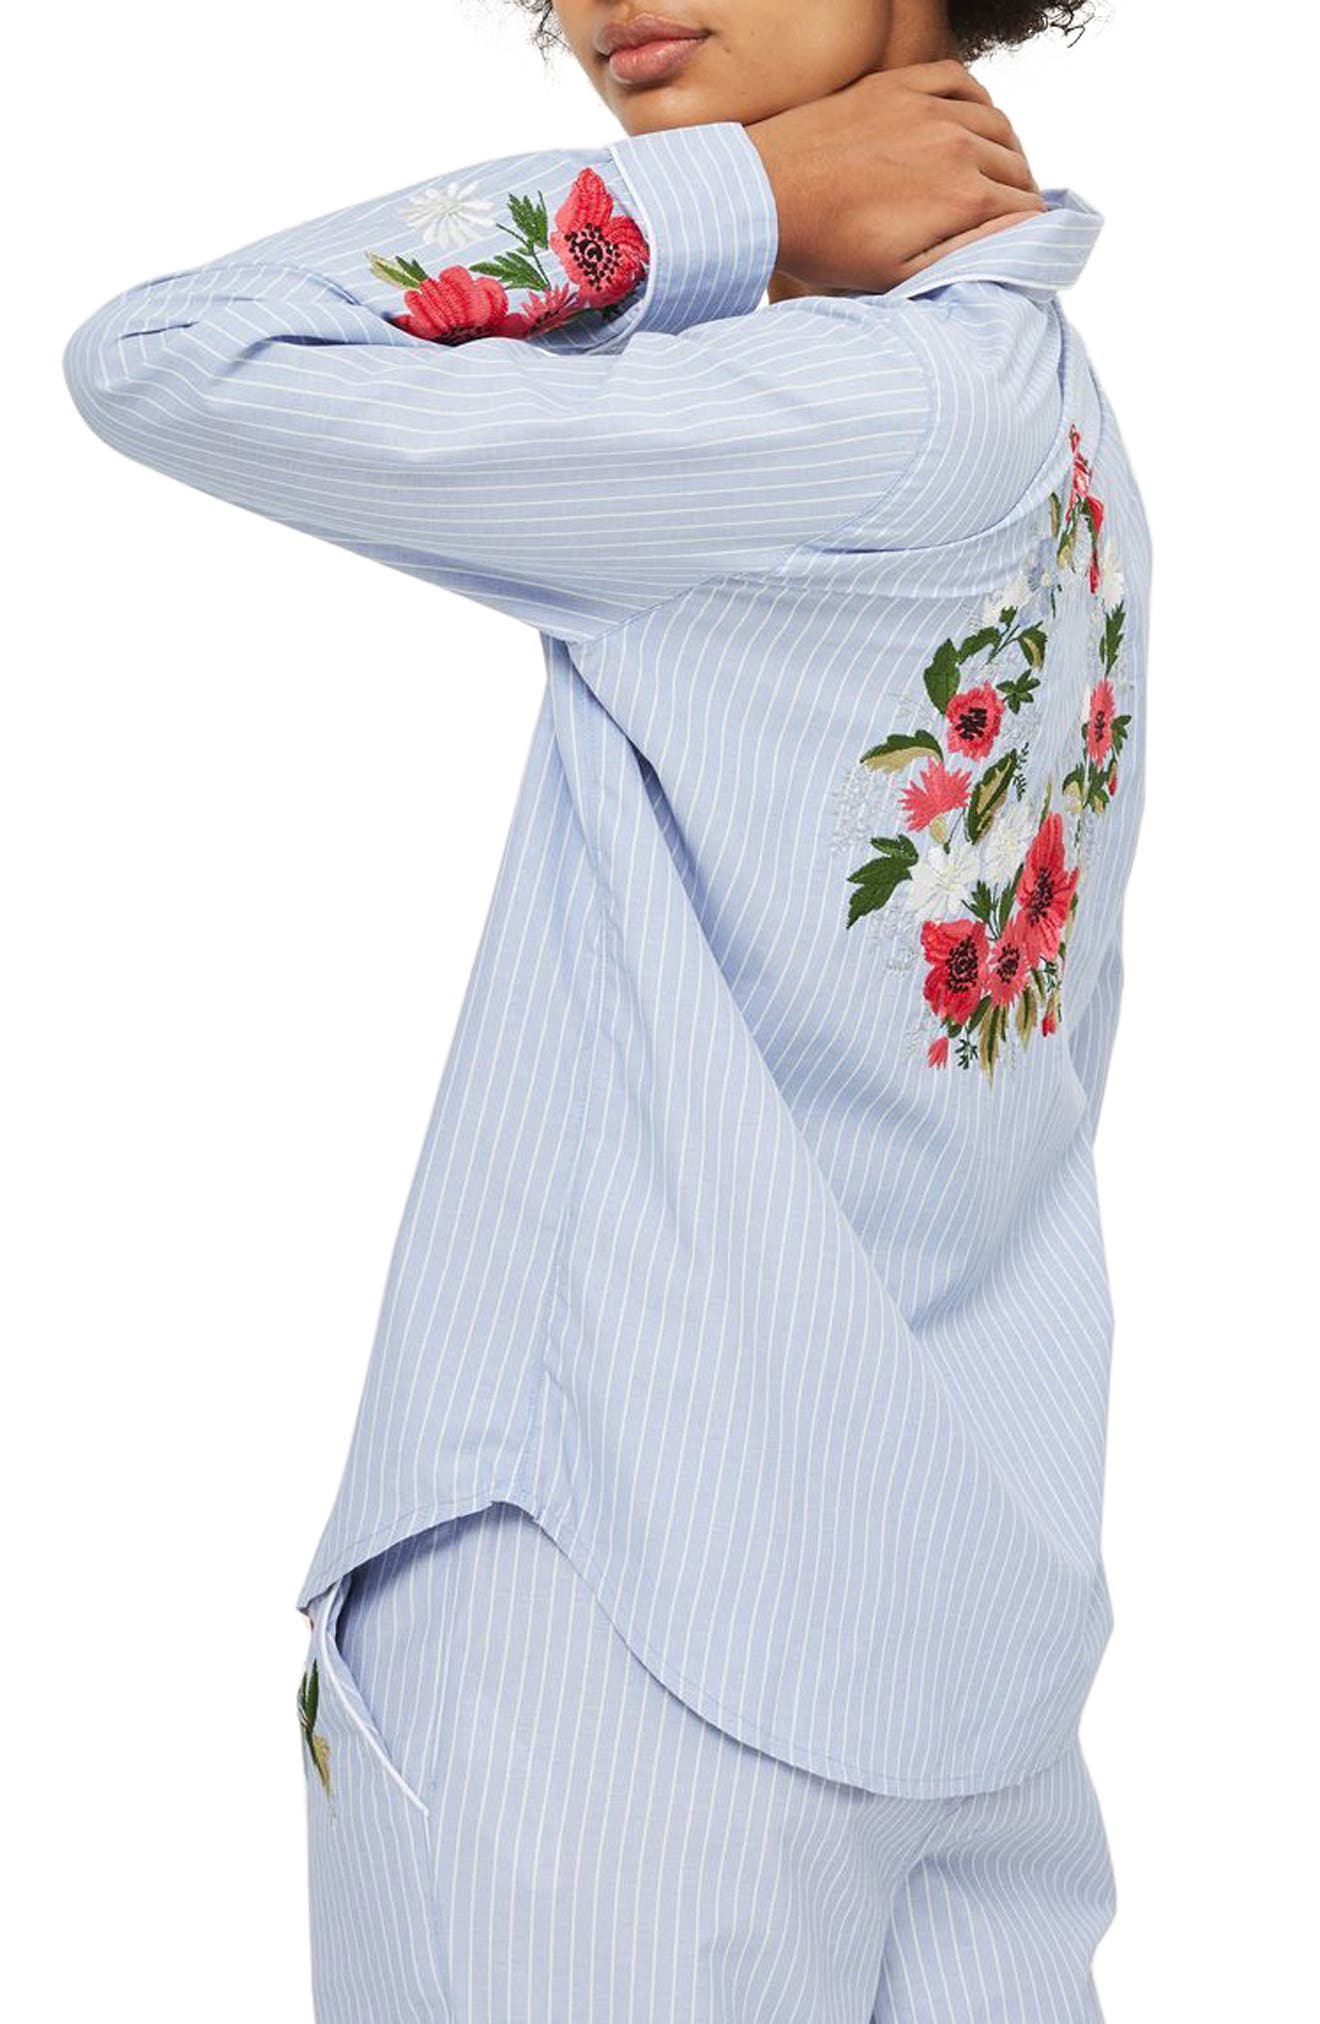 Floral Embroidered Stripe Nightshirt,                             Alternate thumbnail 2, color,                             Blue Multi